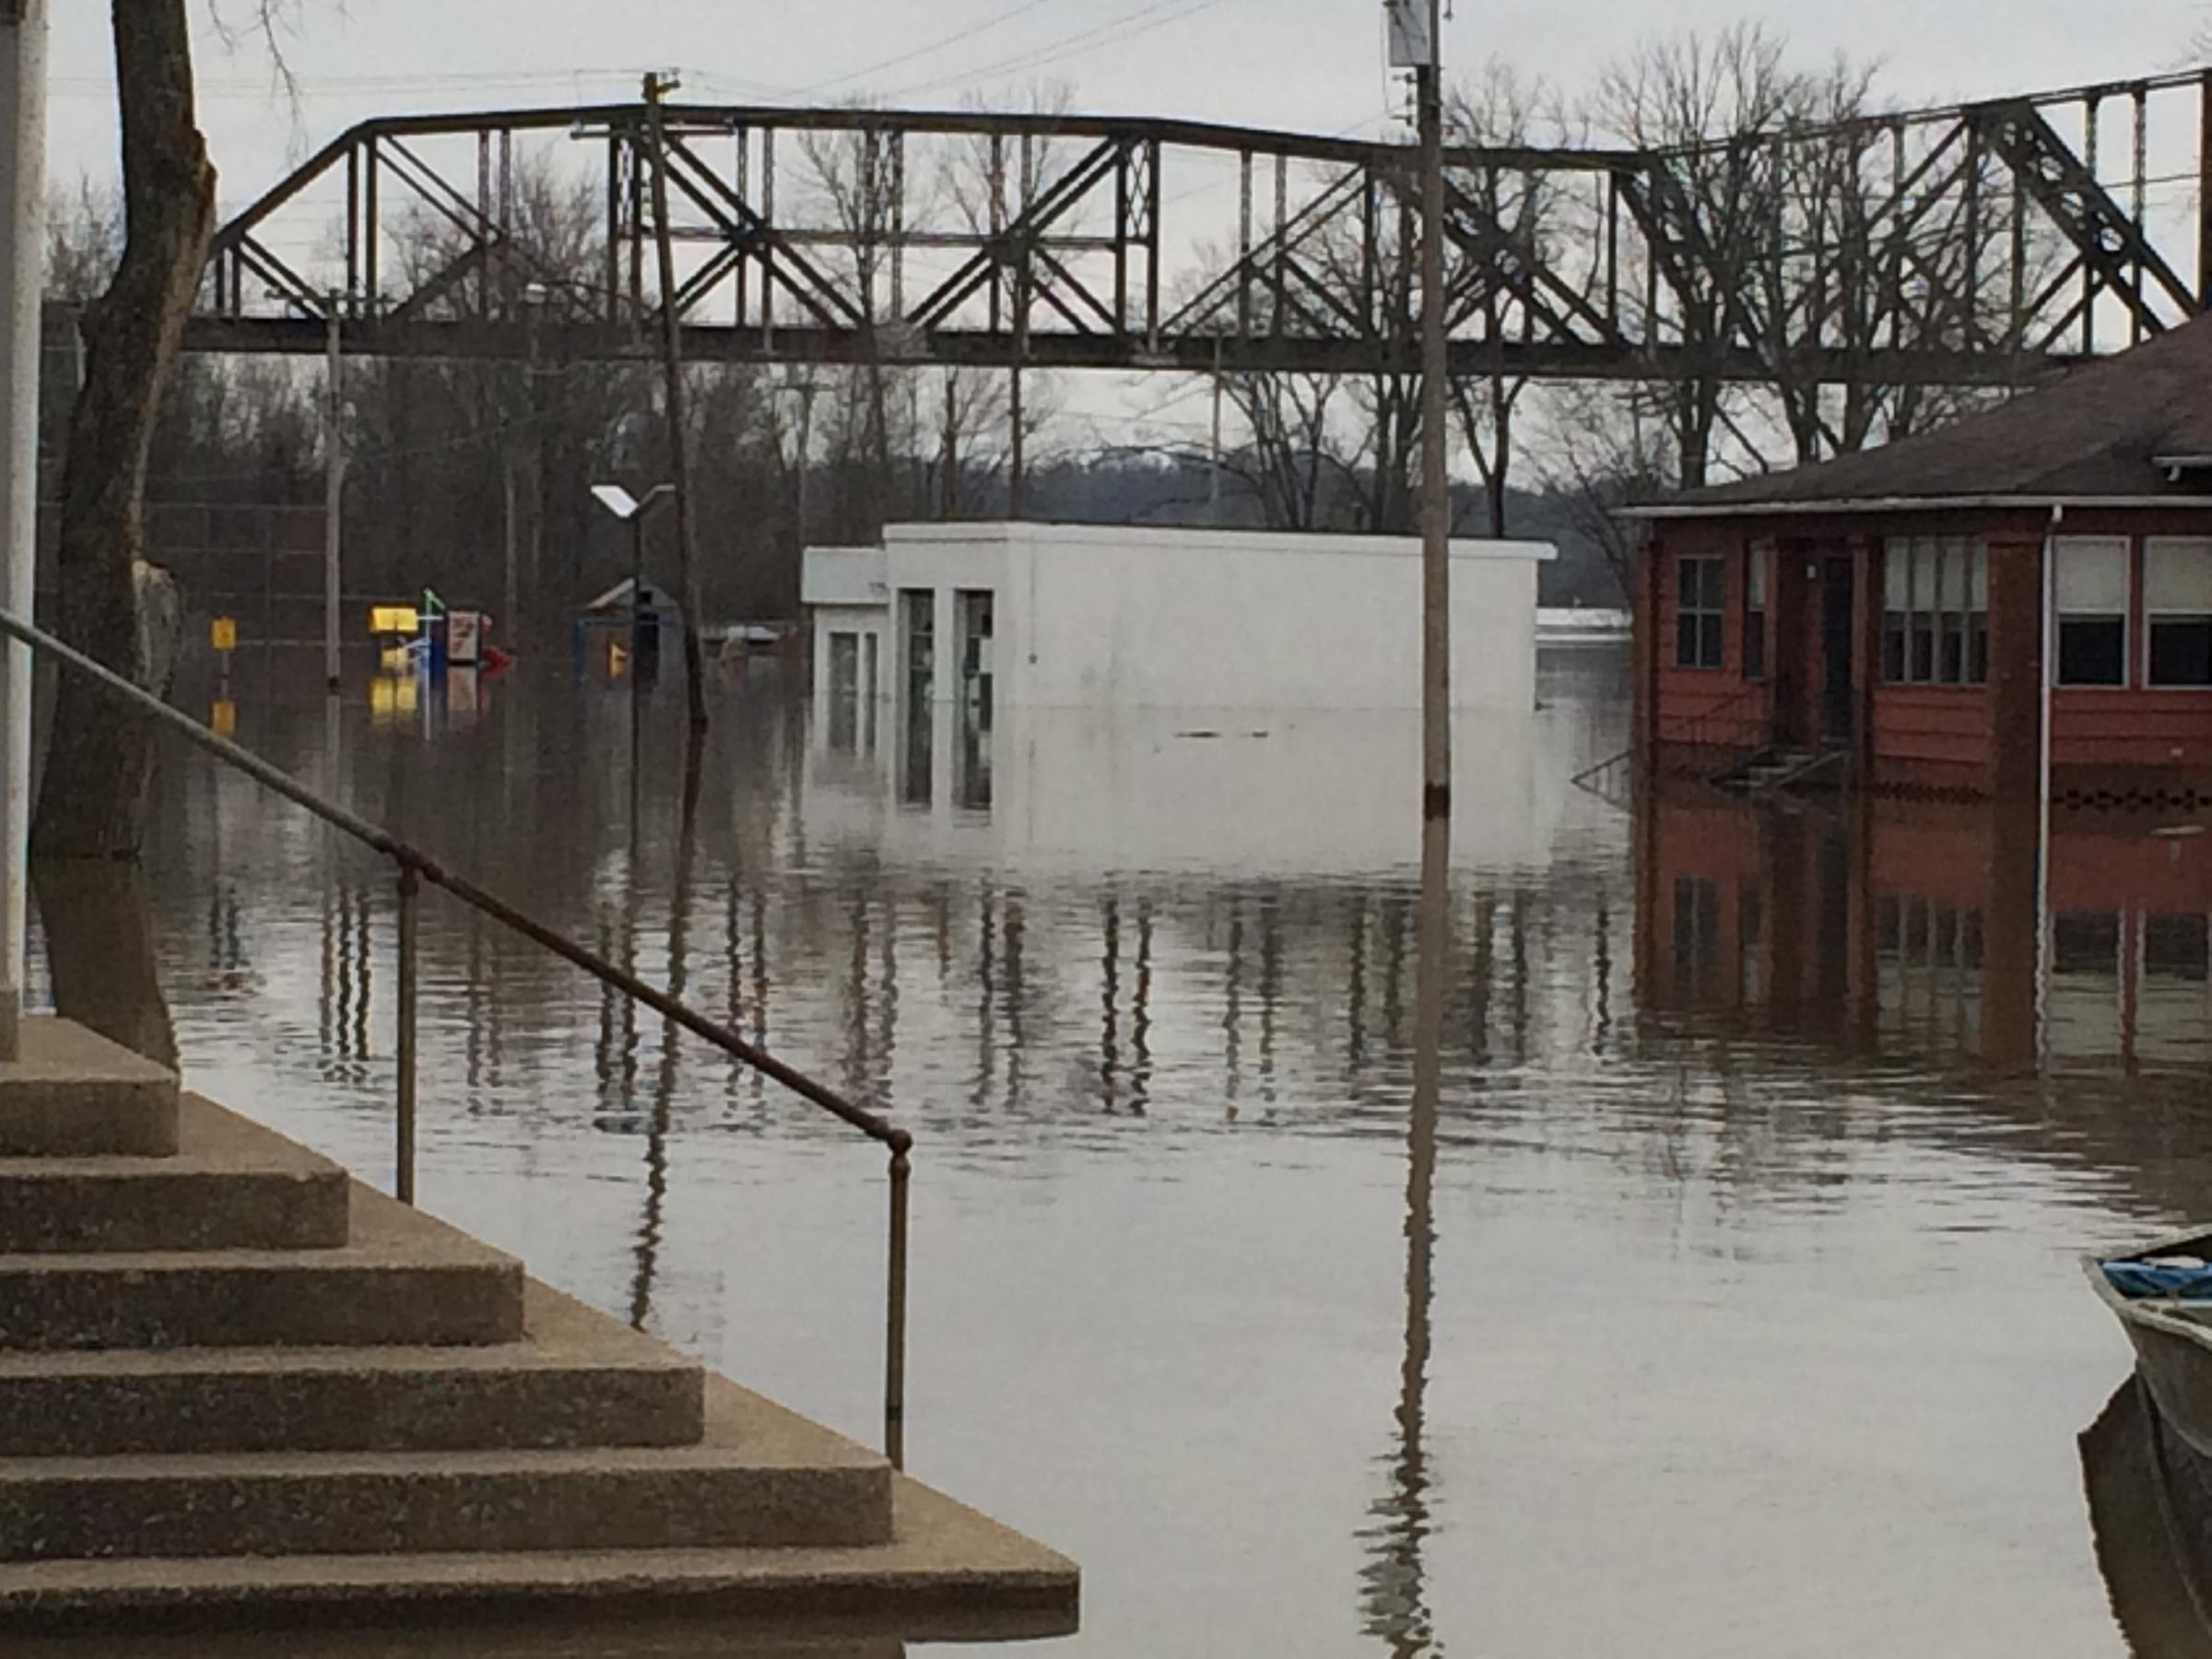 Illinois alexander county thebes - A Nearby Playground And Building Were Flooded In Thebes Illinois On Wednesday On Dec 30 2015